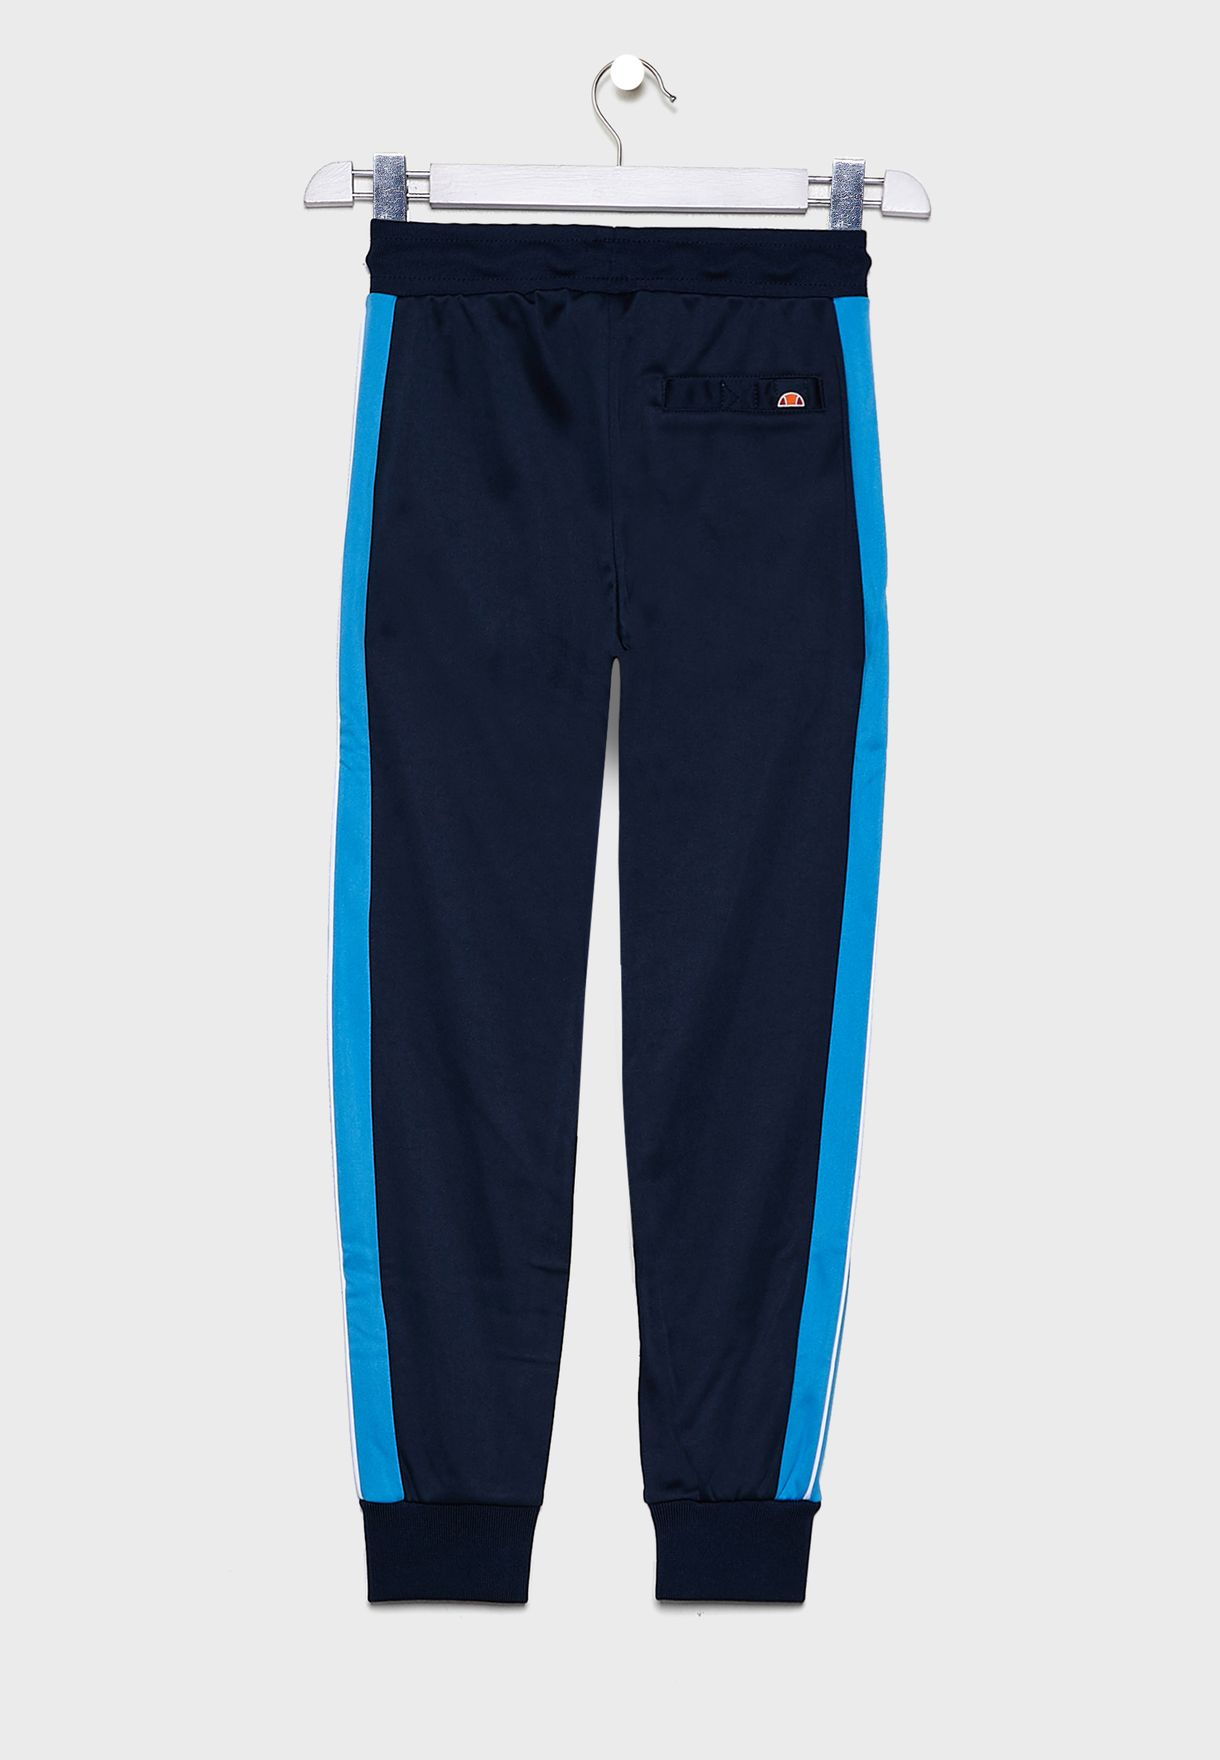 Youth Vacto Sweatpants